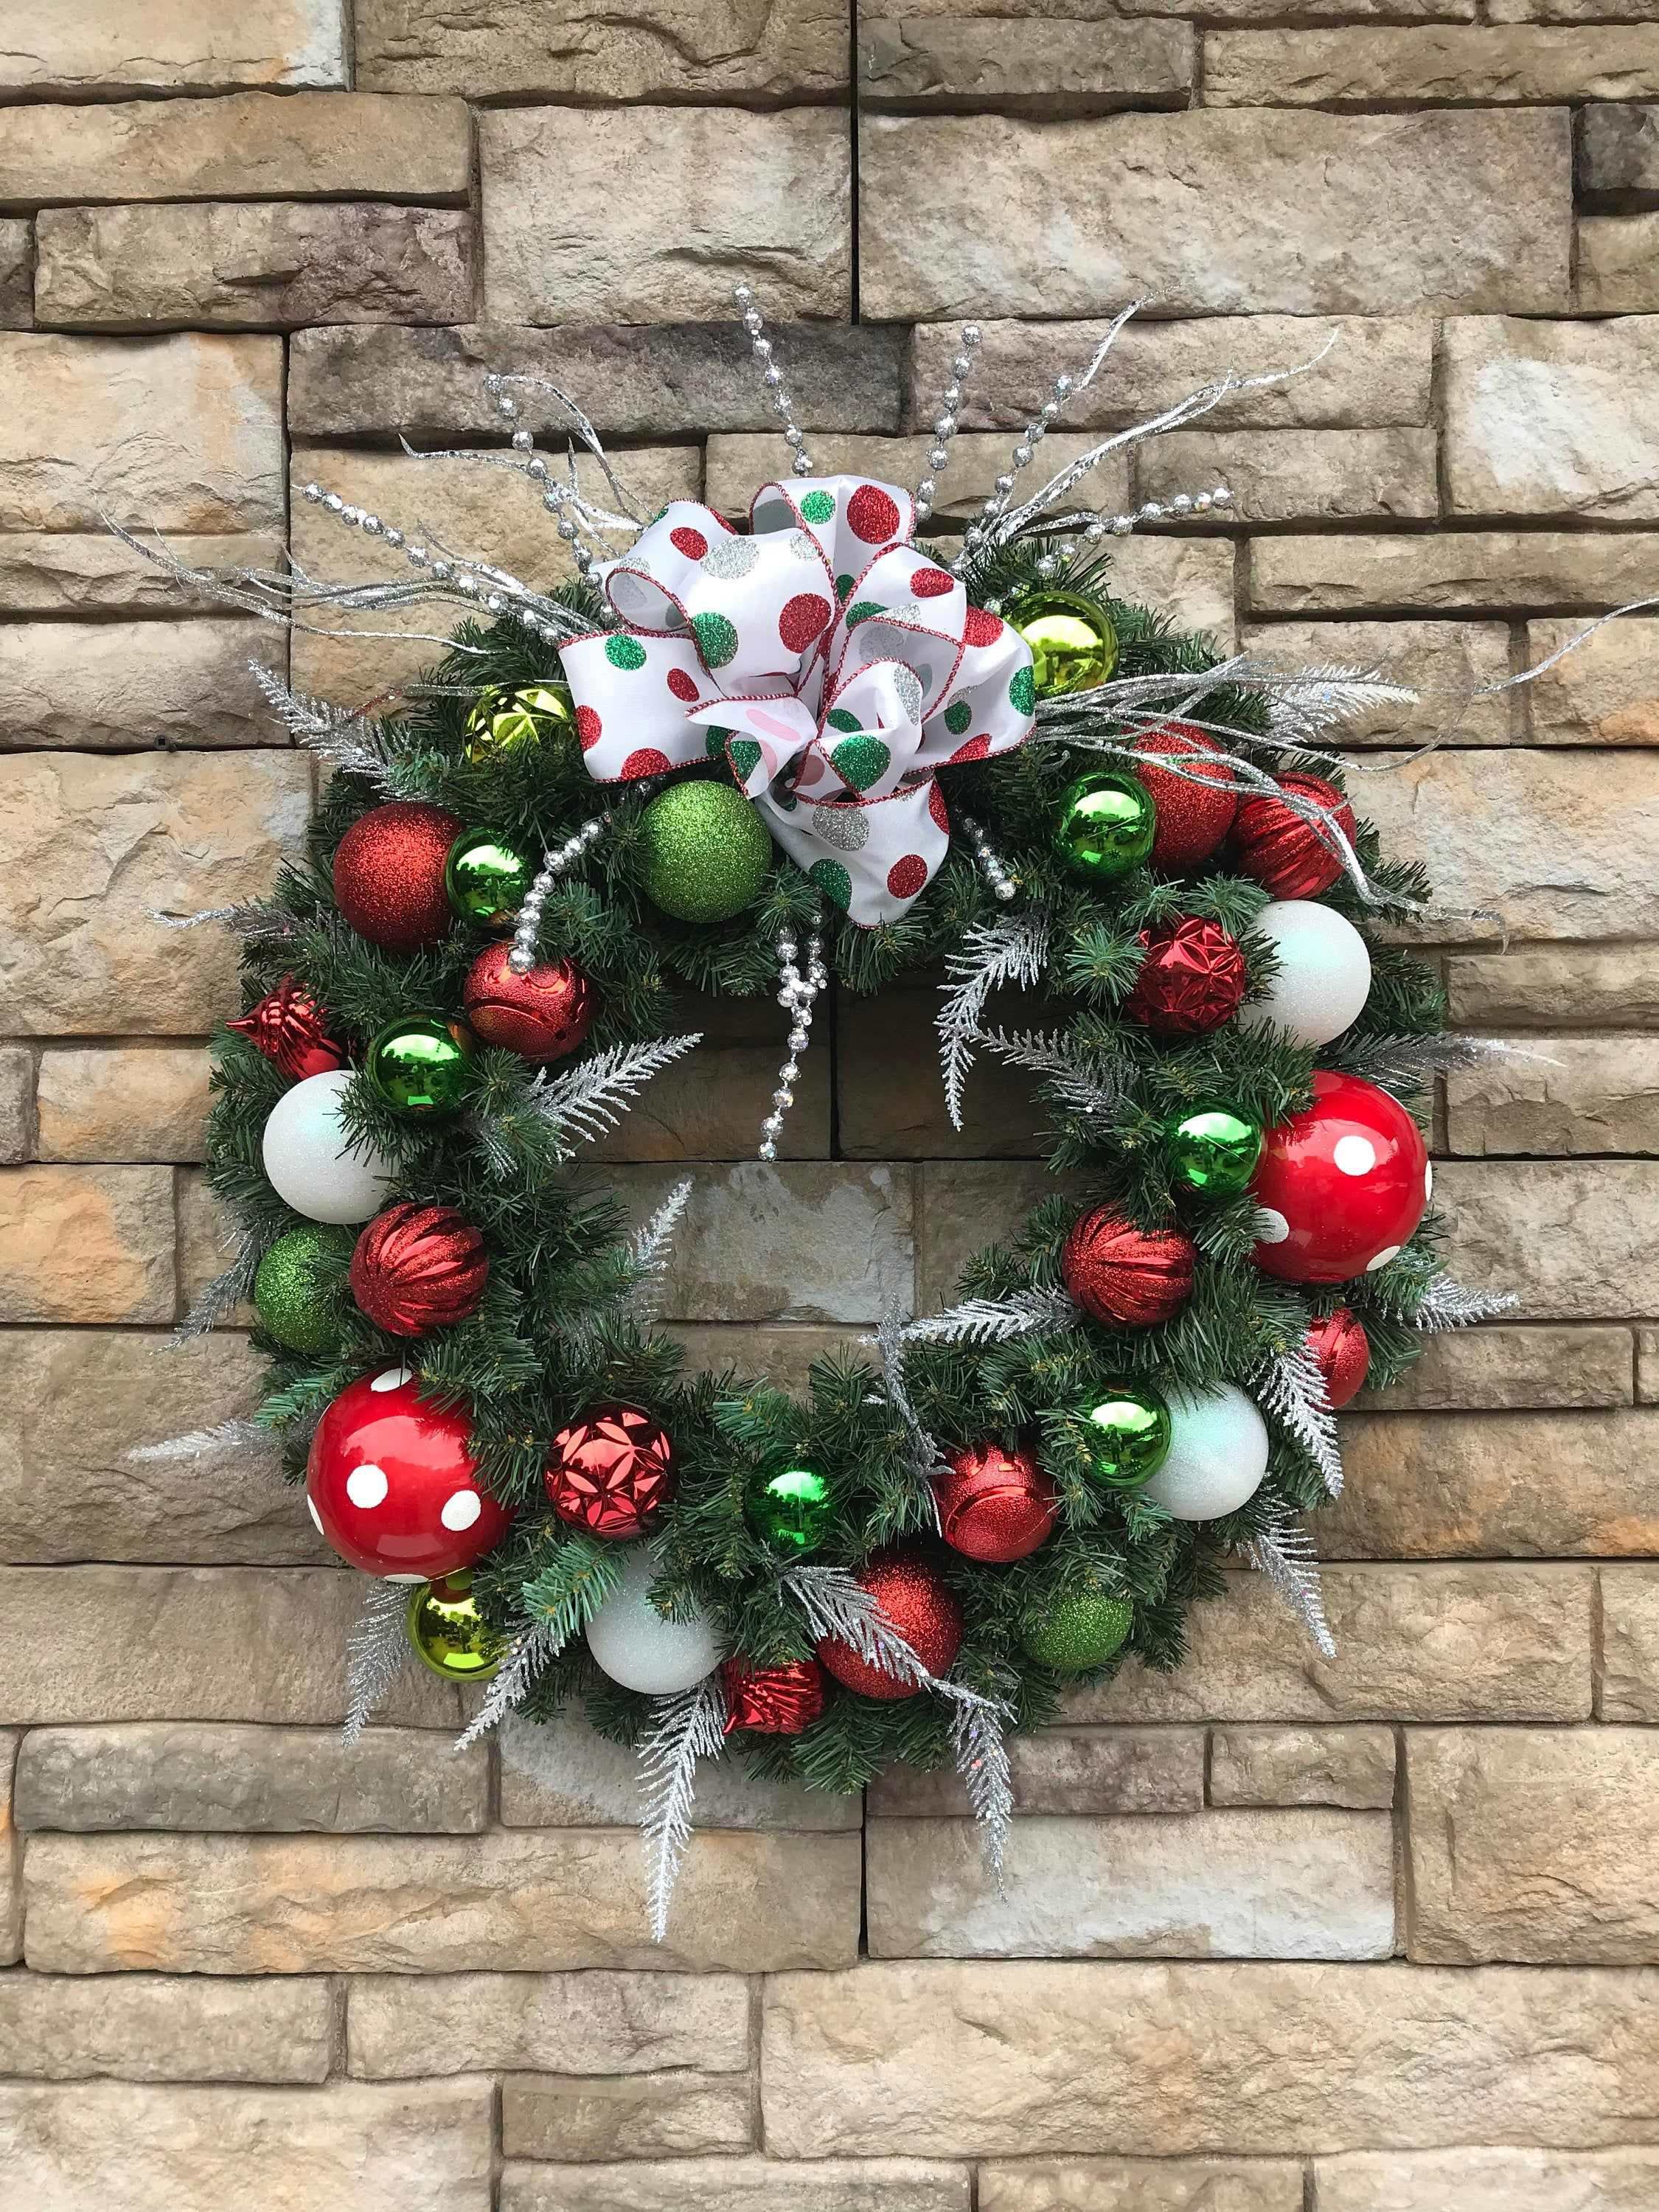 Whoville Christmas Wreath Whoville Whimsy Silk Evergreen Christmas Decor Grinch Fro Christmas Wreaths Holiday Wreaths Christmas Christmas Decorations Ornaments